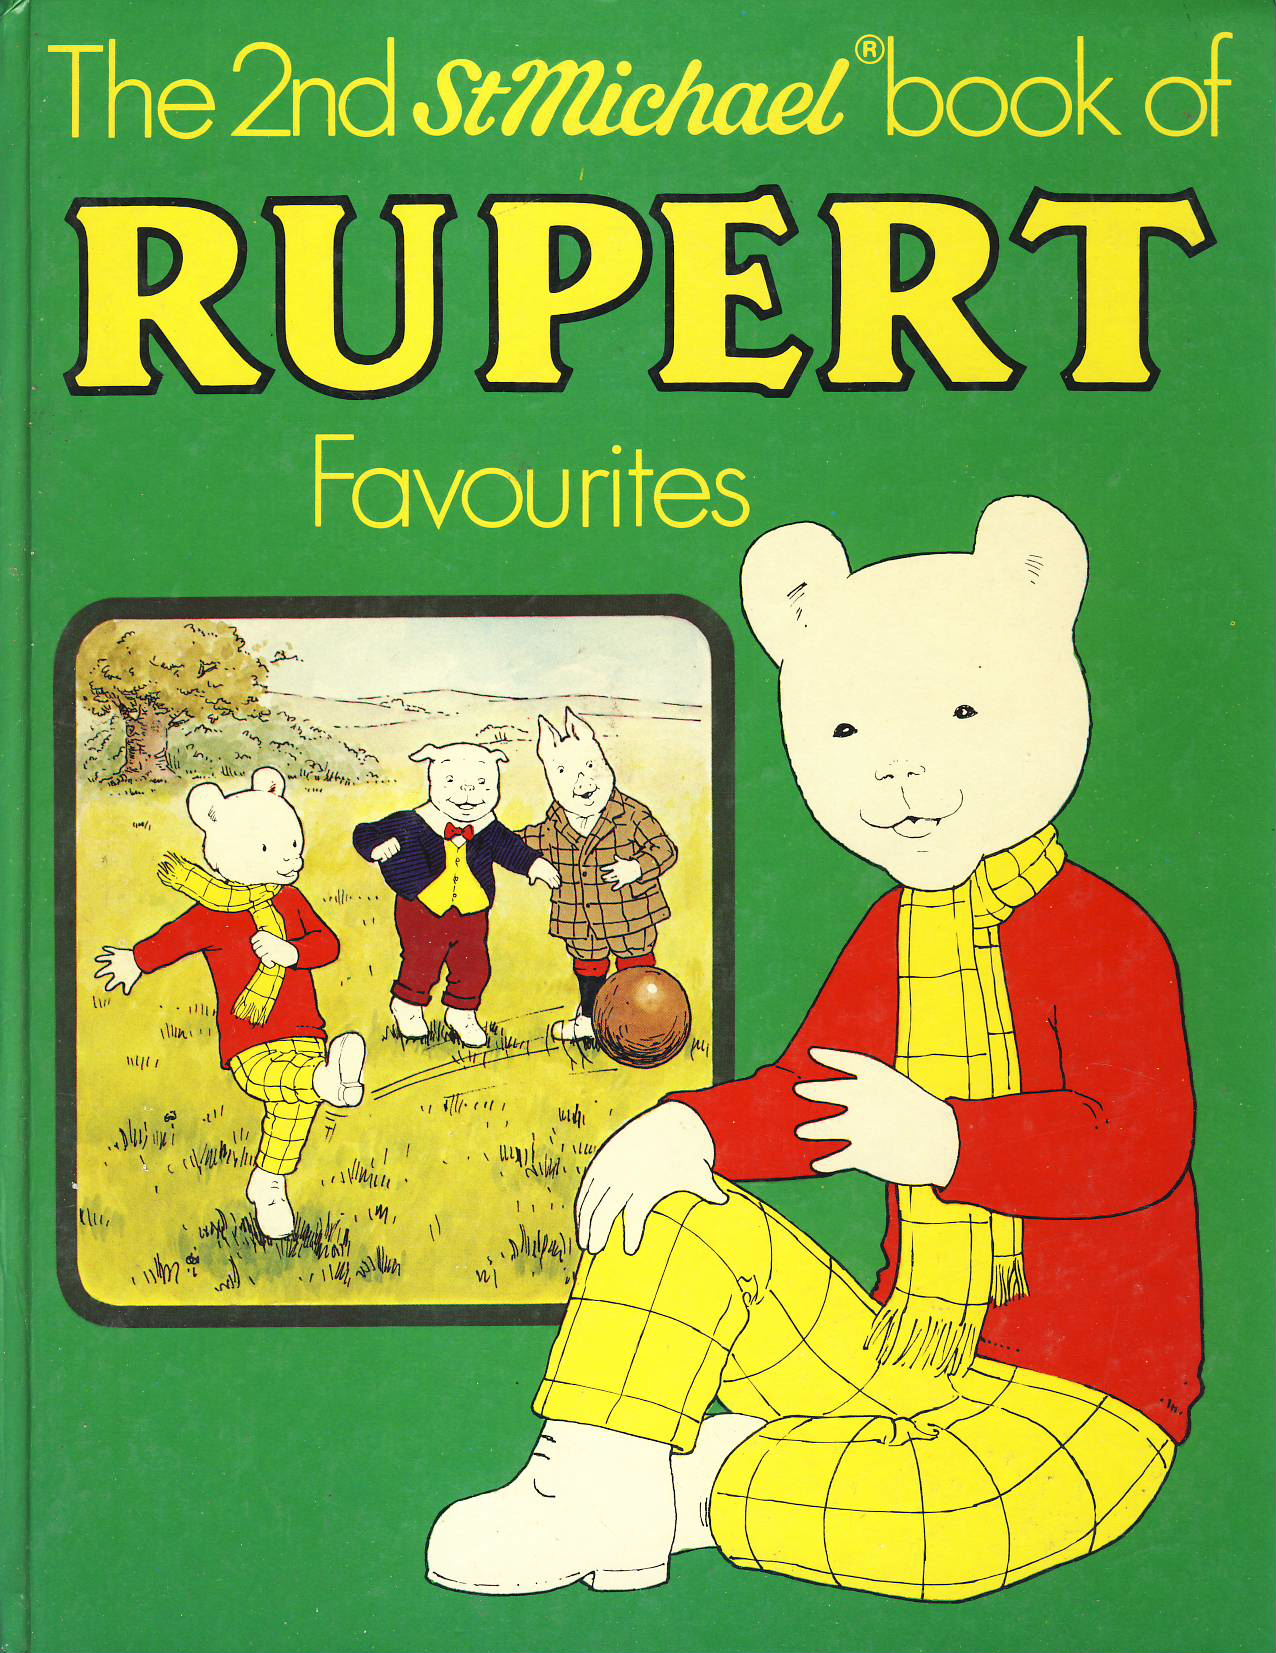 1978 The 2nd St Michael book of RUPERT Favourites MARY TOURTEL hardback book ref373 Pre-owned book in good clean condition for age. Please see large photo for more details.